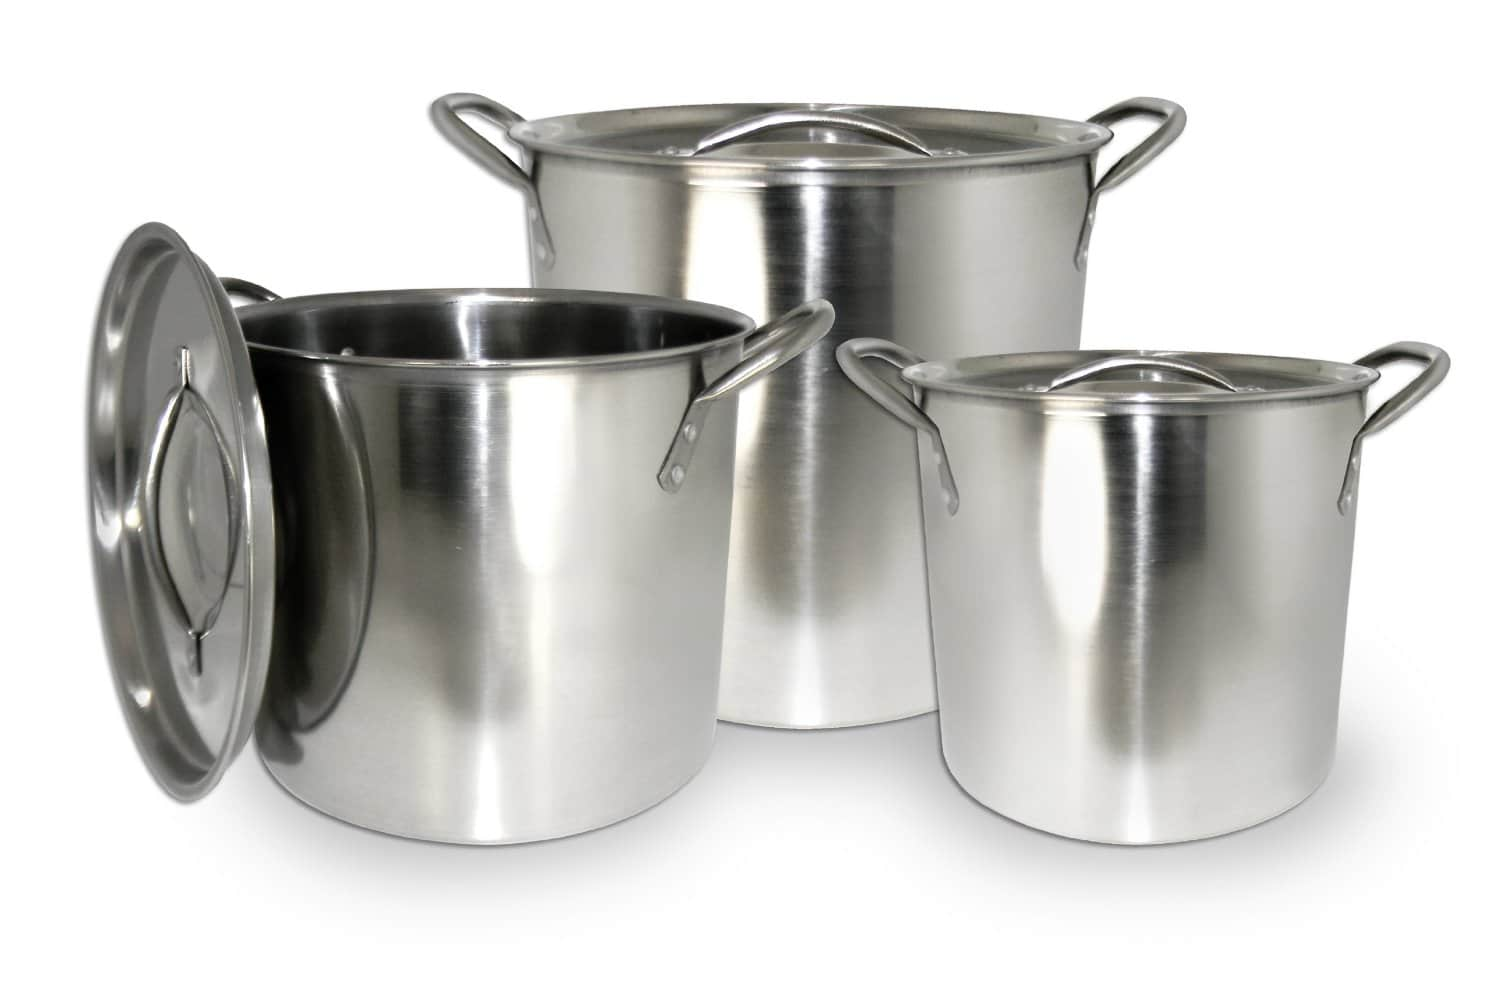 Hells Kitchen Pots